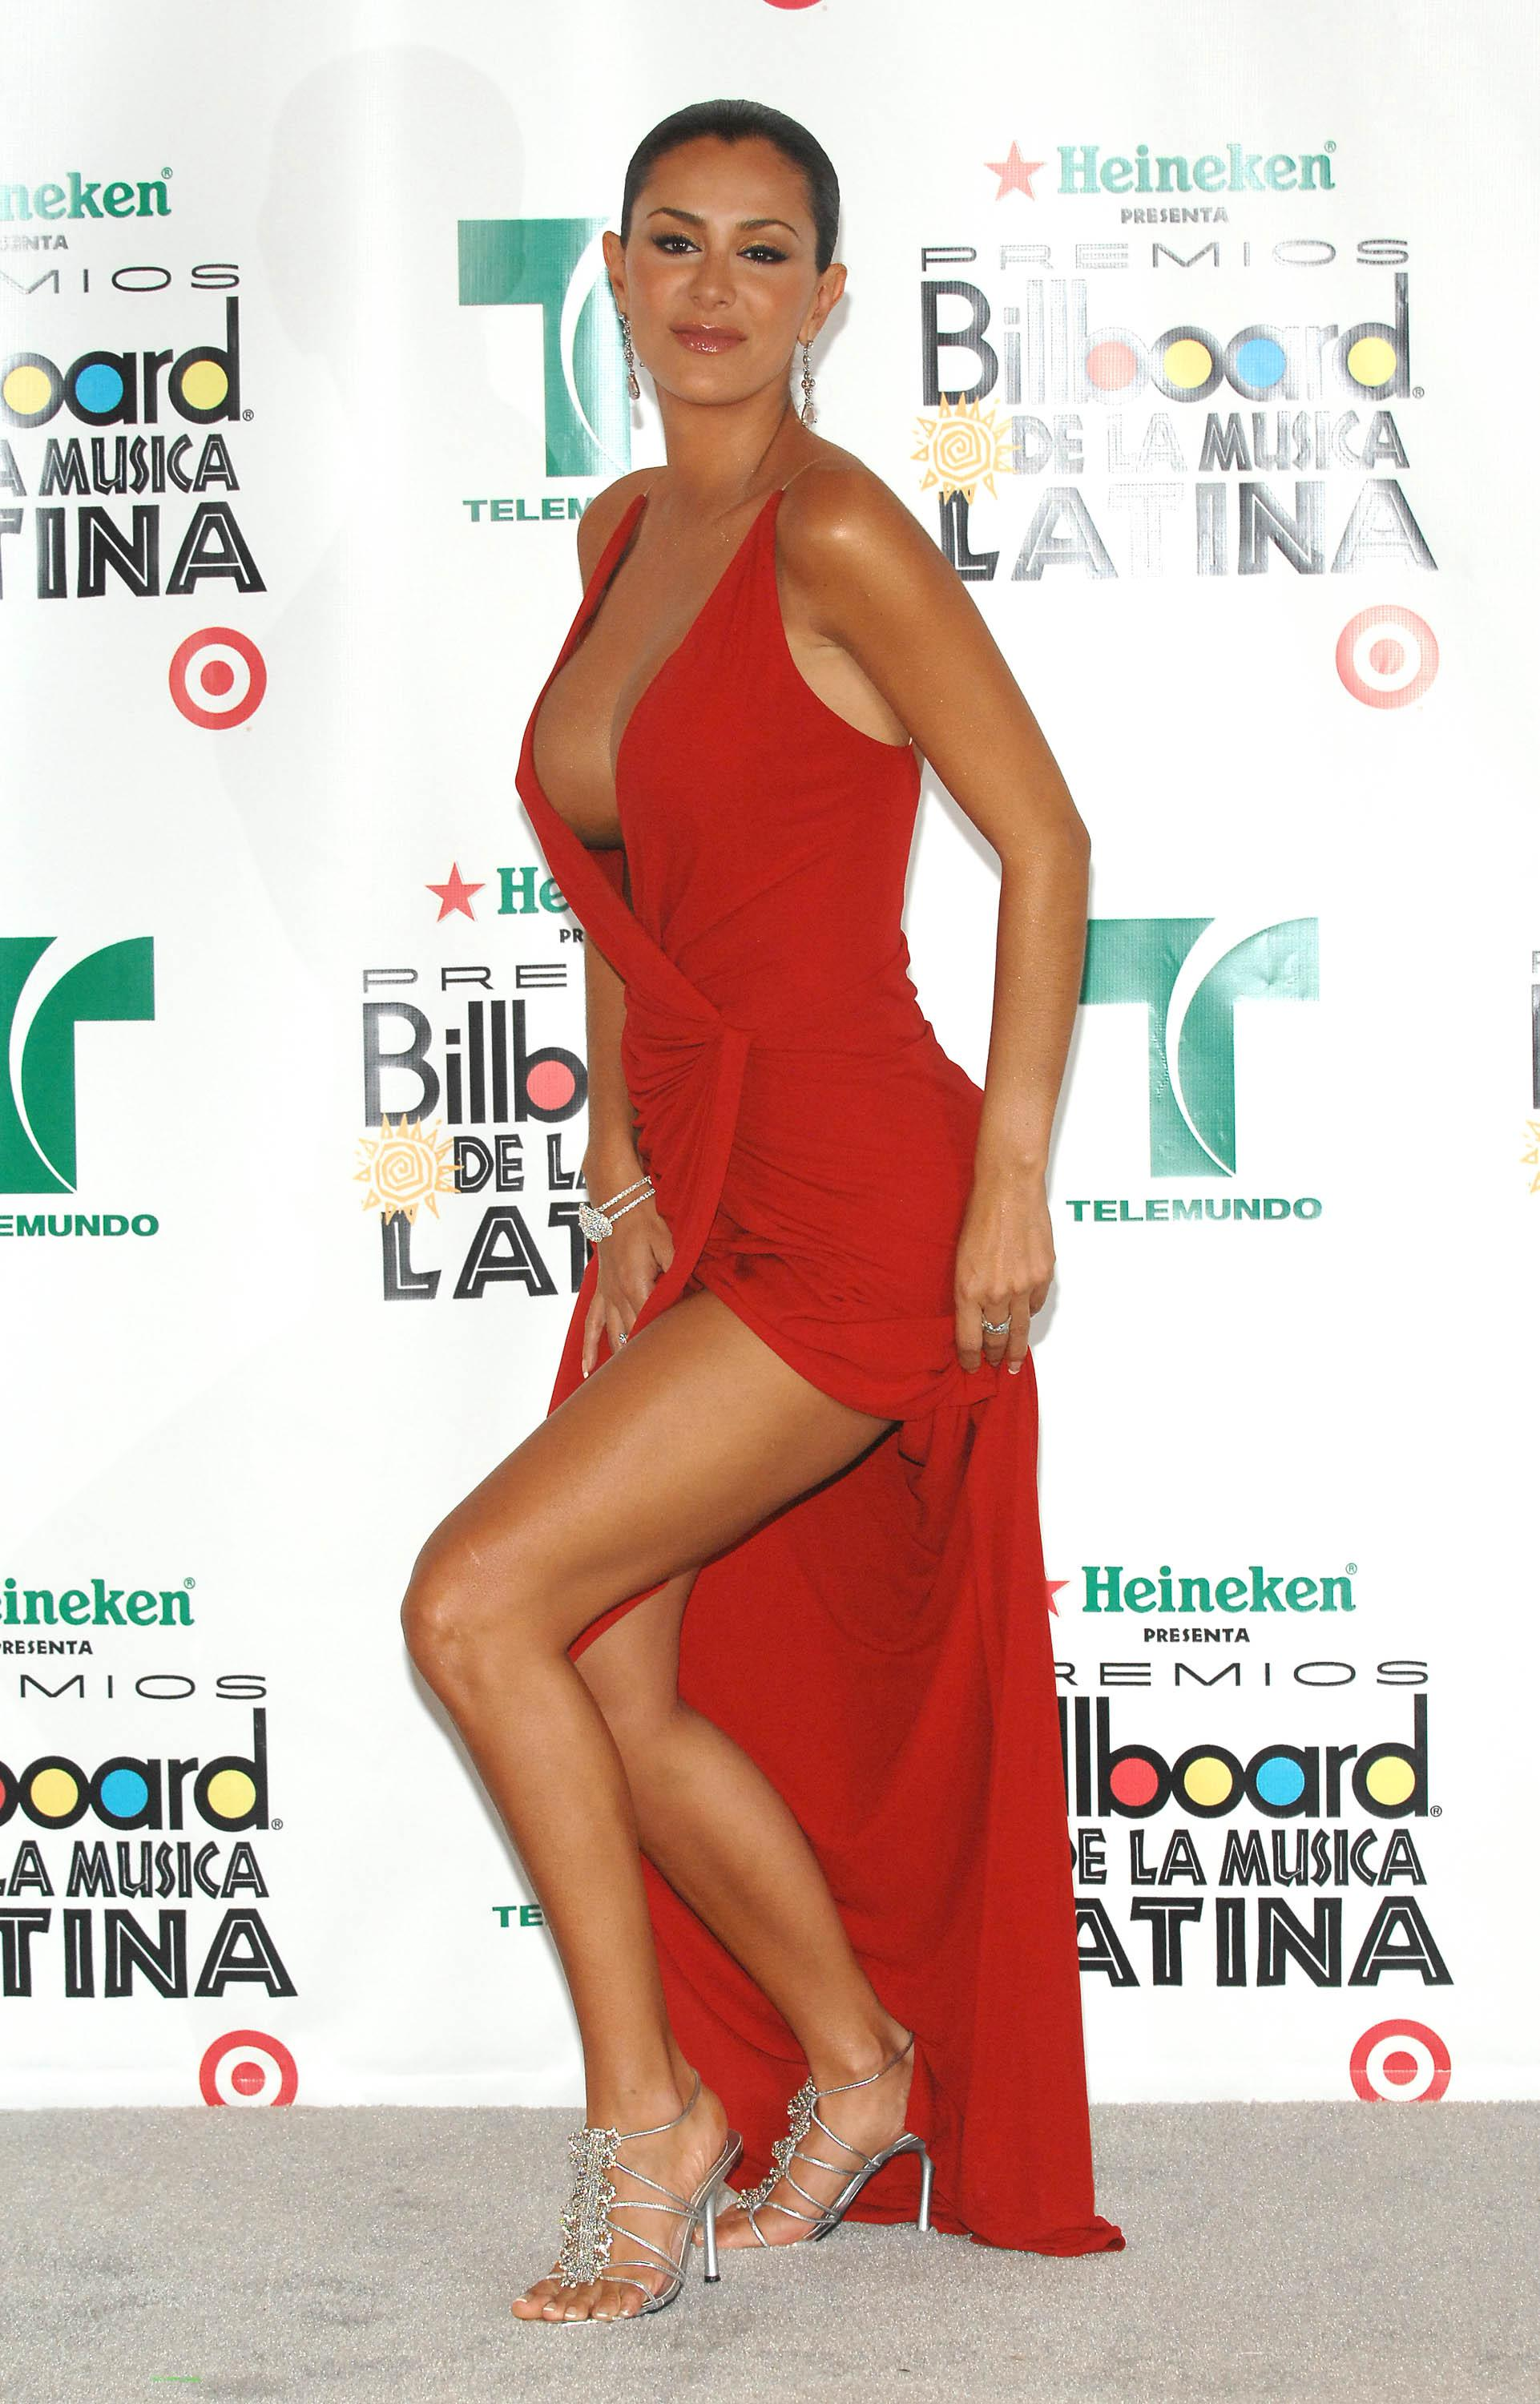 Ninel conde naked pictures-5842